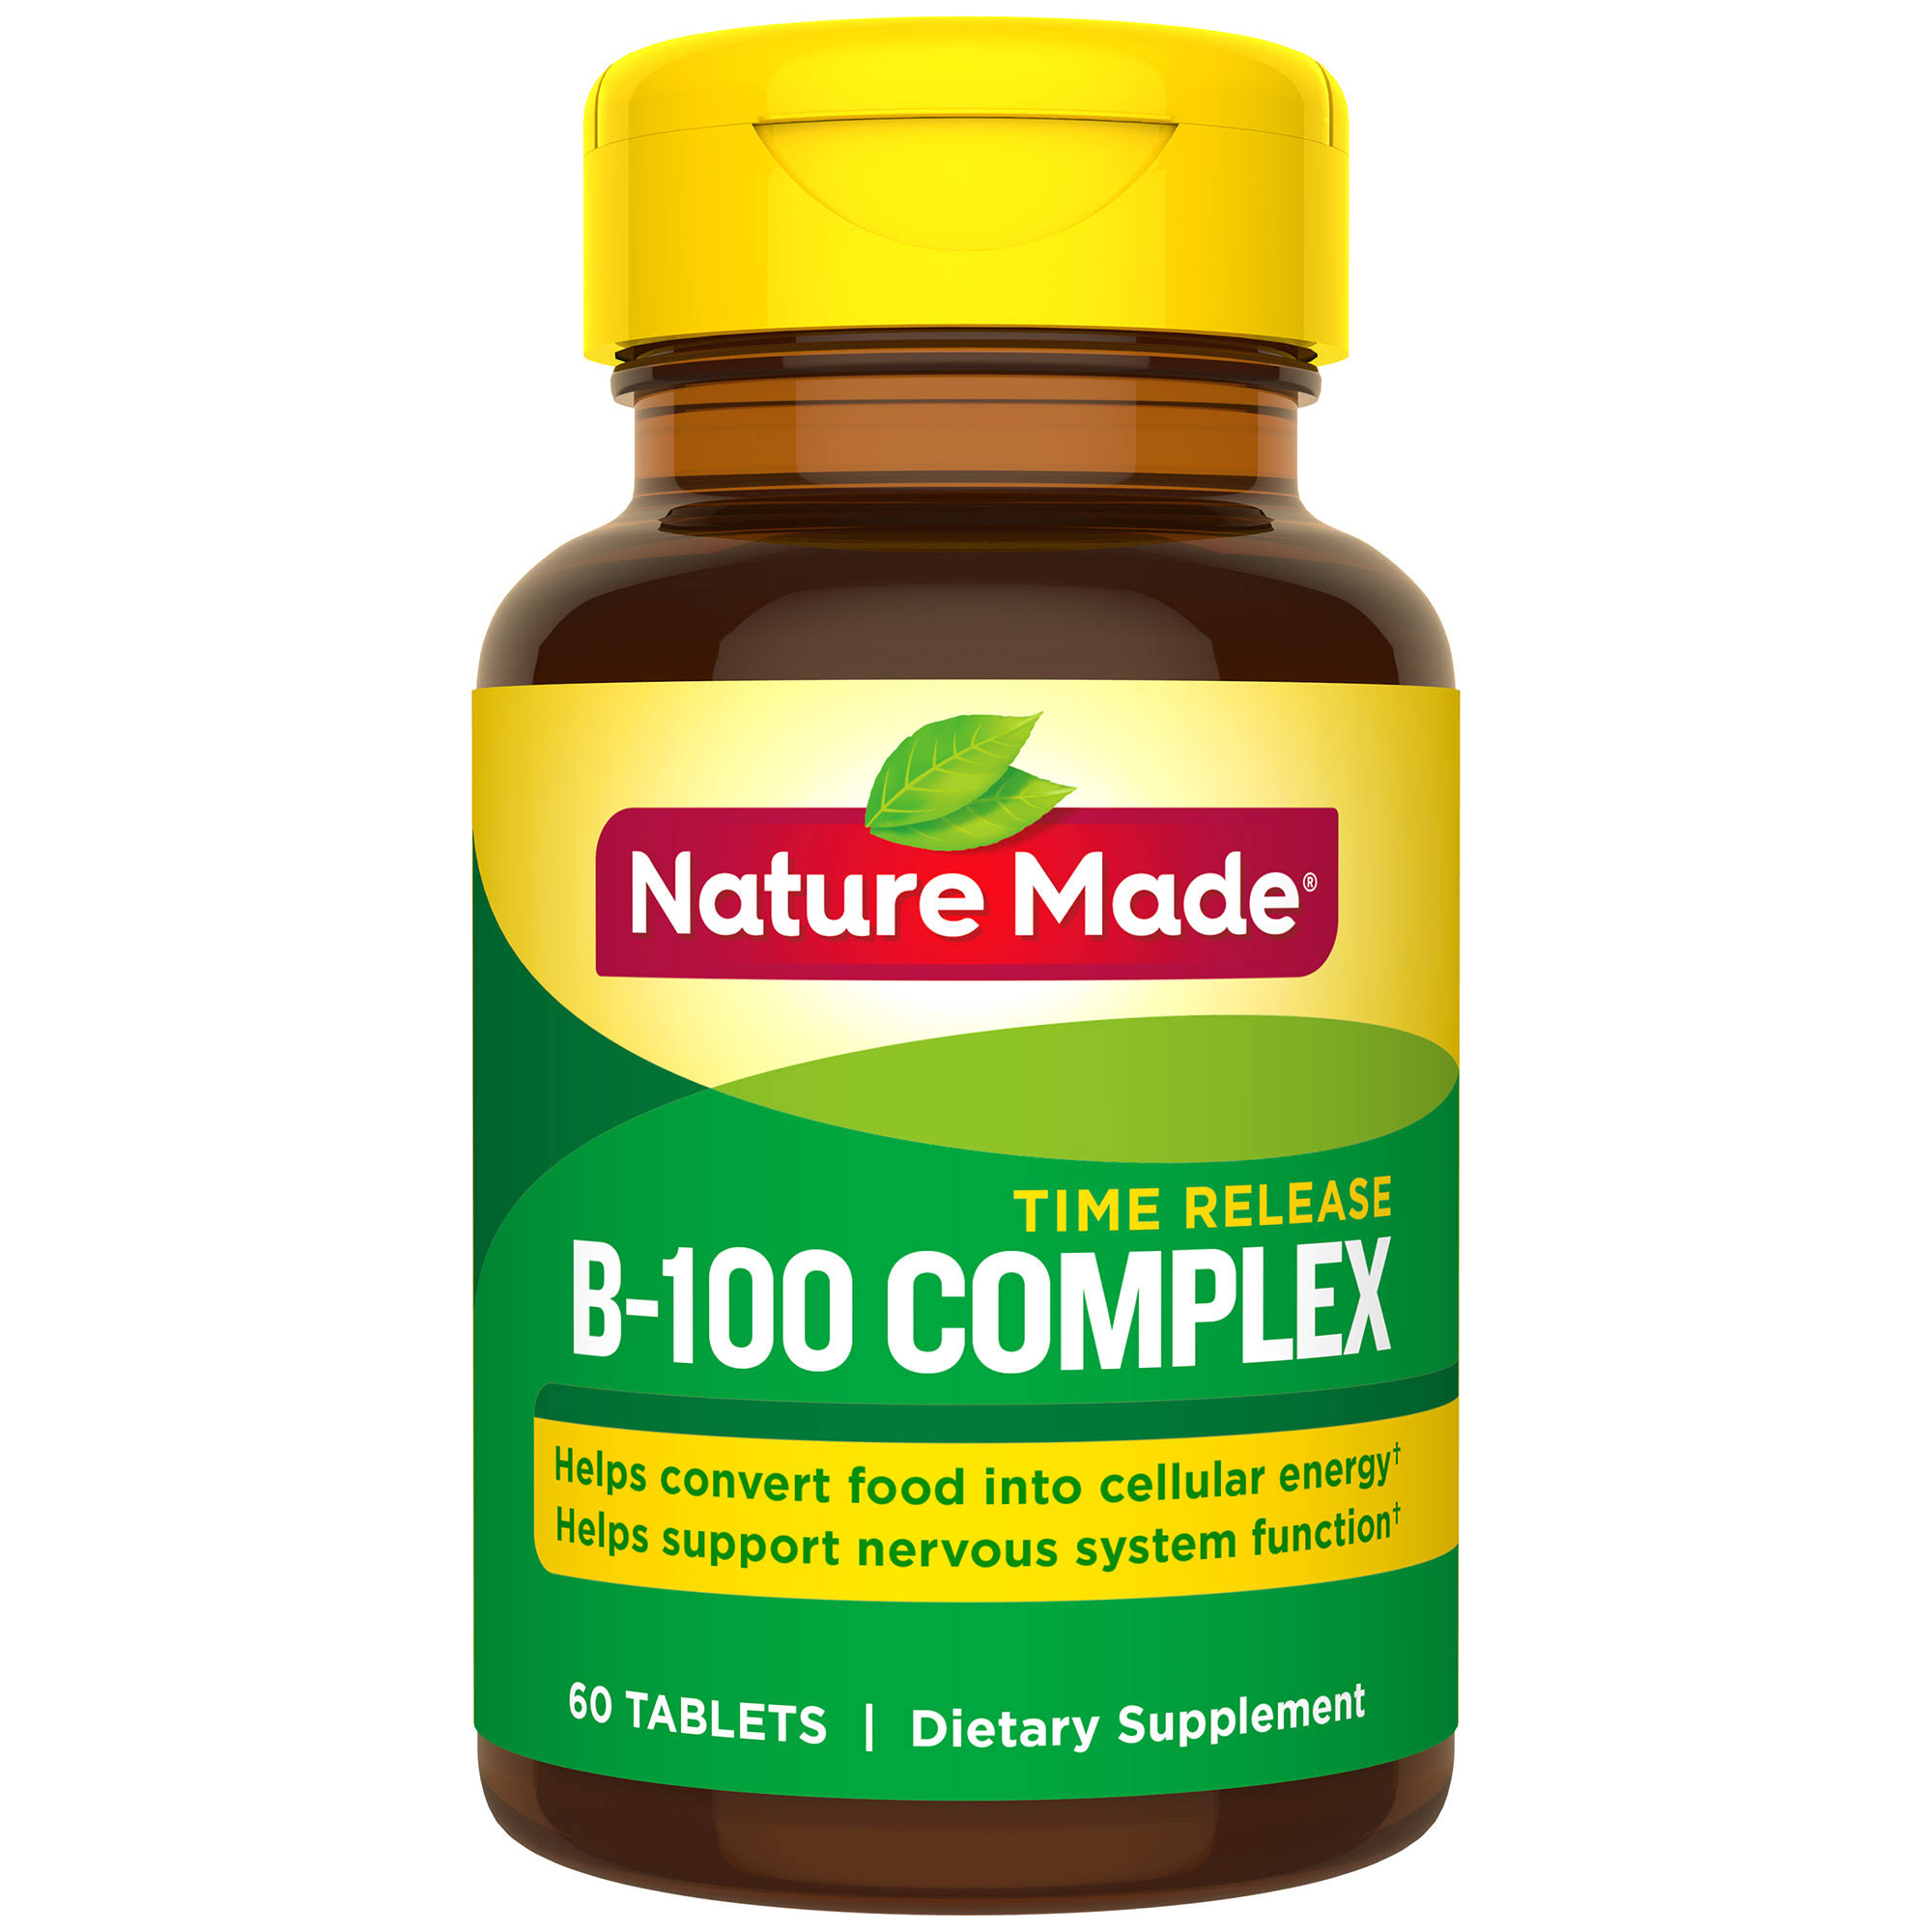 Nature Made Balanced Vitamin B 100 Complex Supplement - 60ct